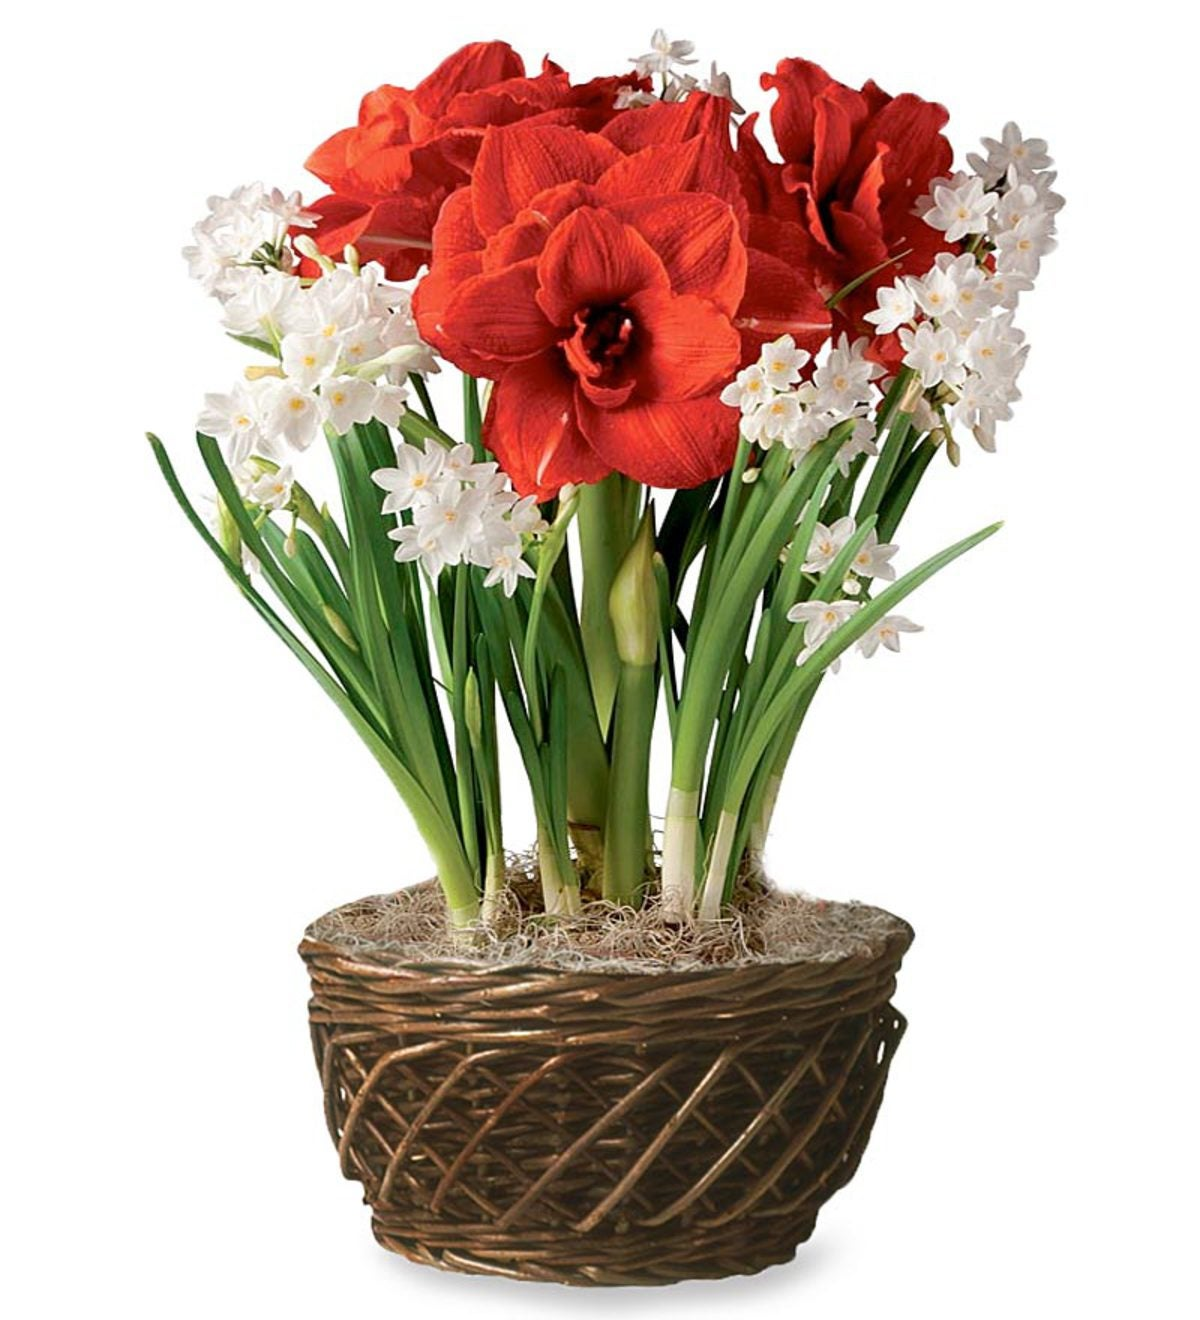 Bulb Garden With Amaryllis and Narcissus